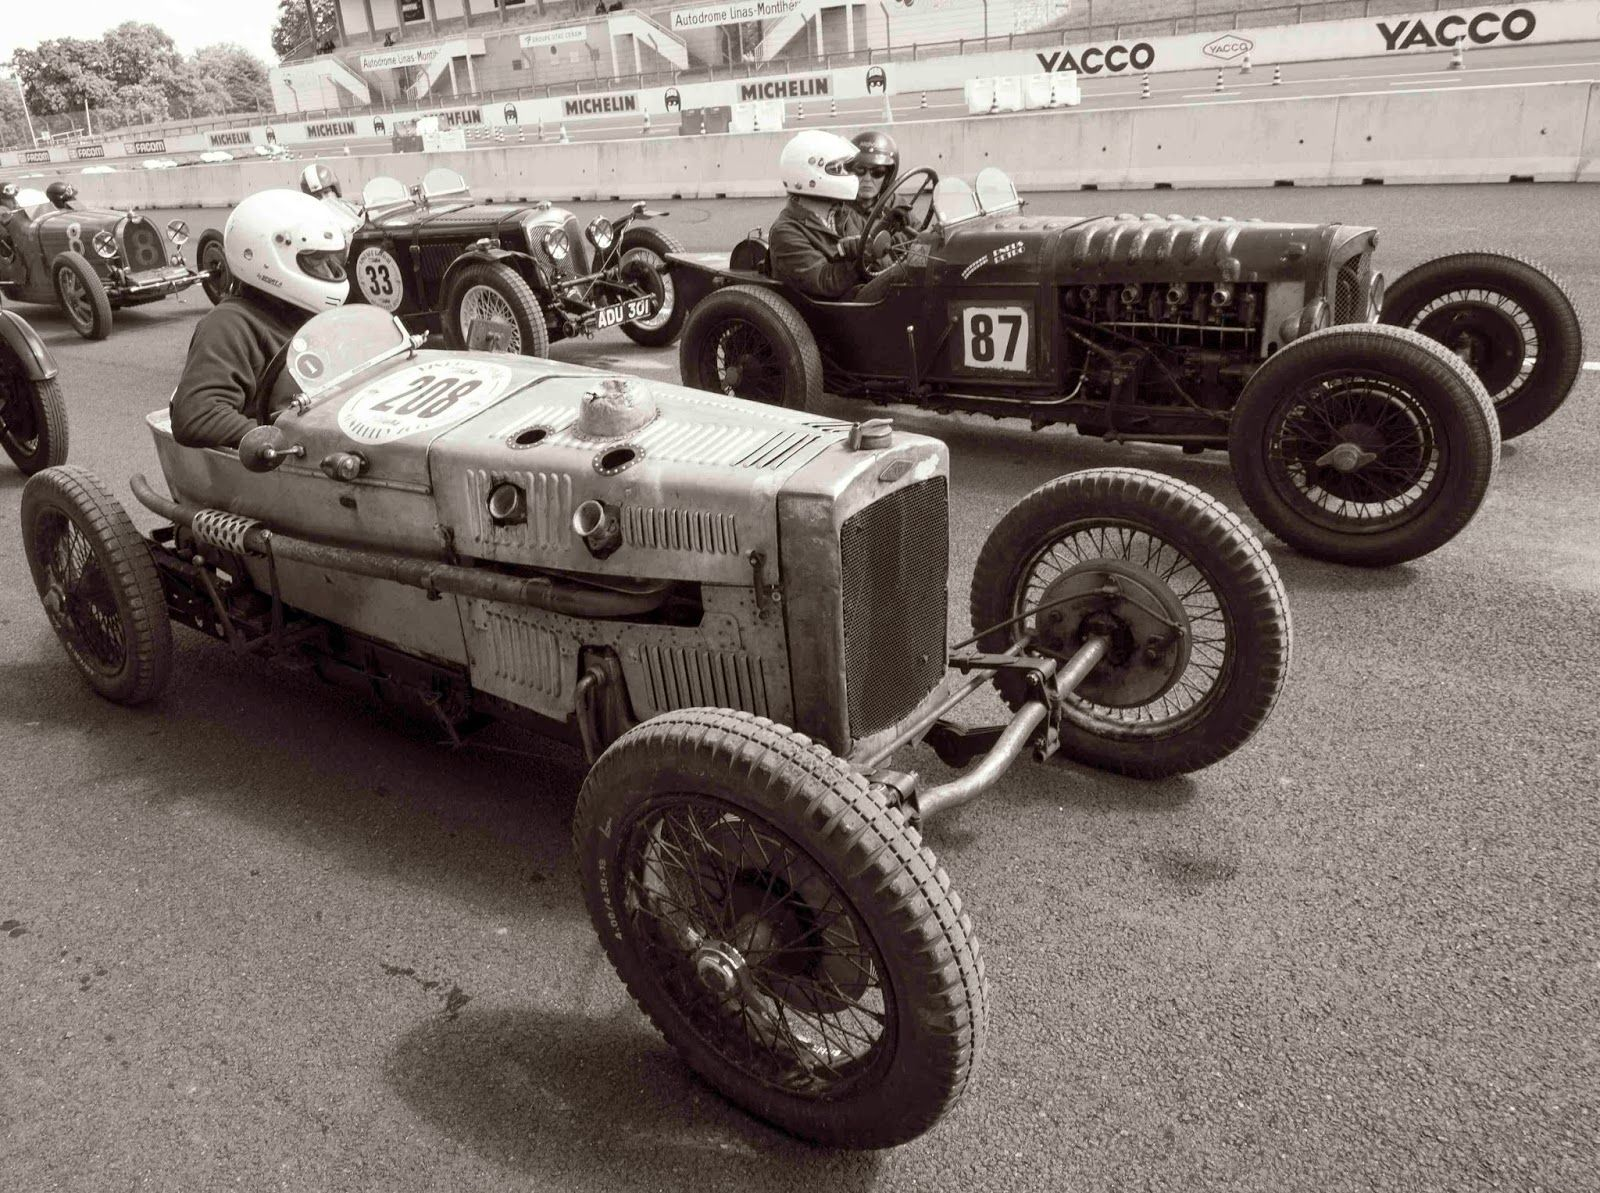 Pin by Jim Ternes on Frazer-Nash | Hot rods, Monster trucks, Chain drive